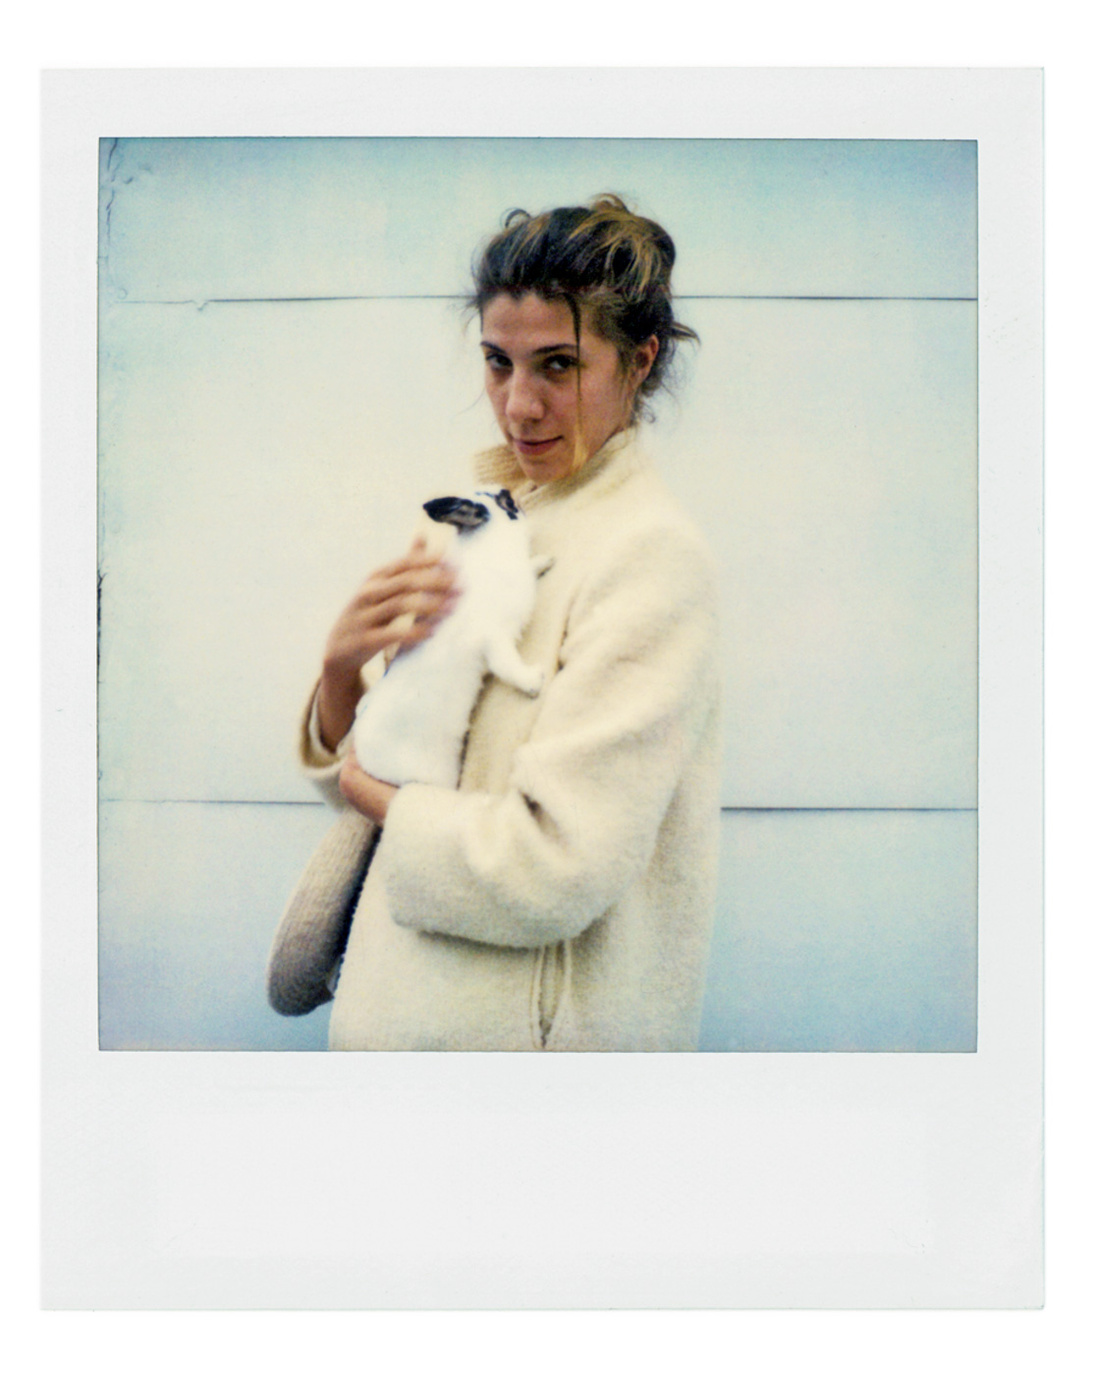 Ryan McGinley, Agathe, 2000. Courtesy of the artist and Team Gallery.